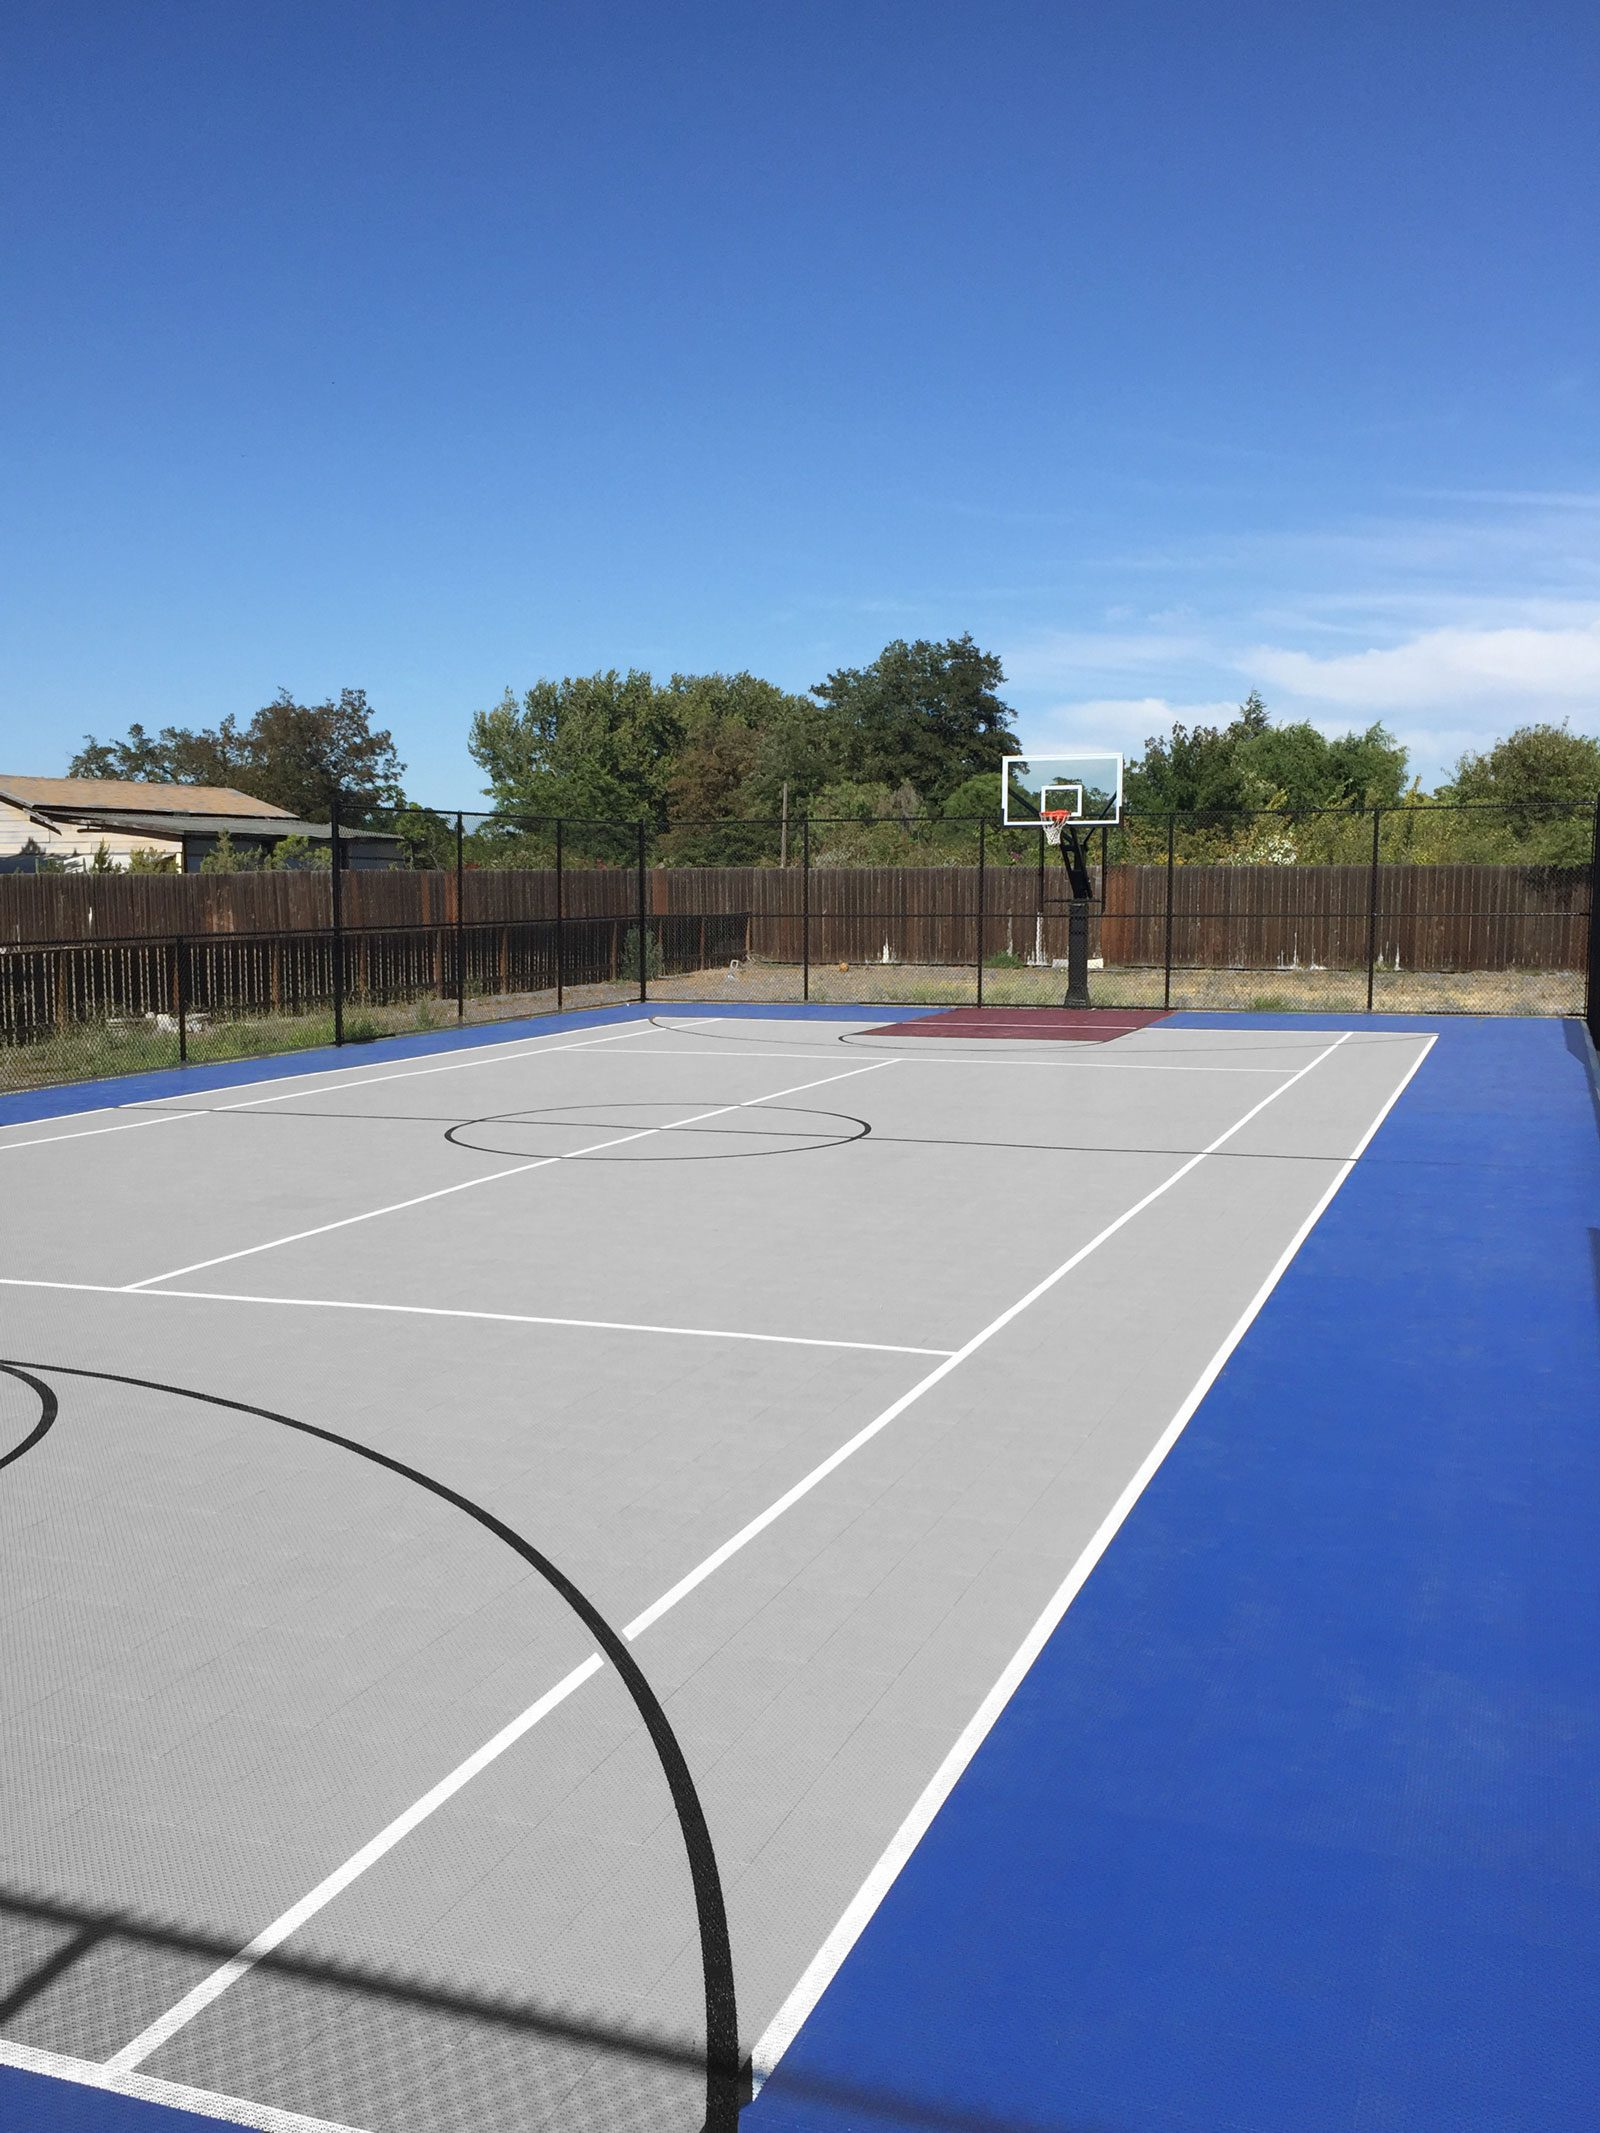 Bright blue, gray and burgundy multi-court